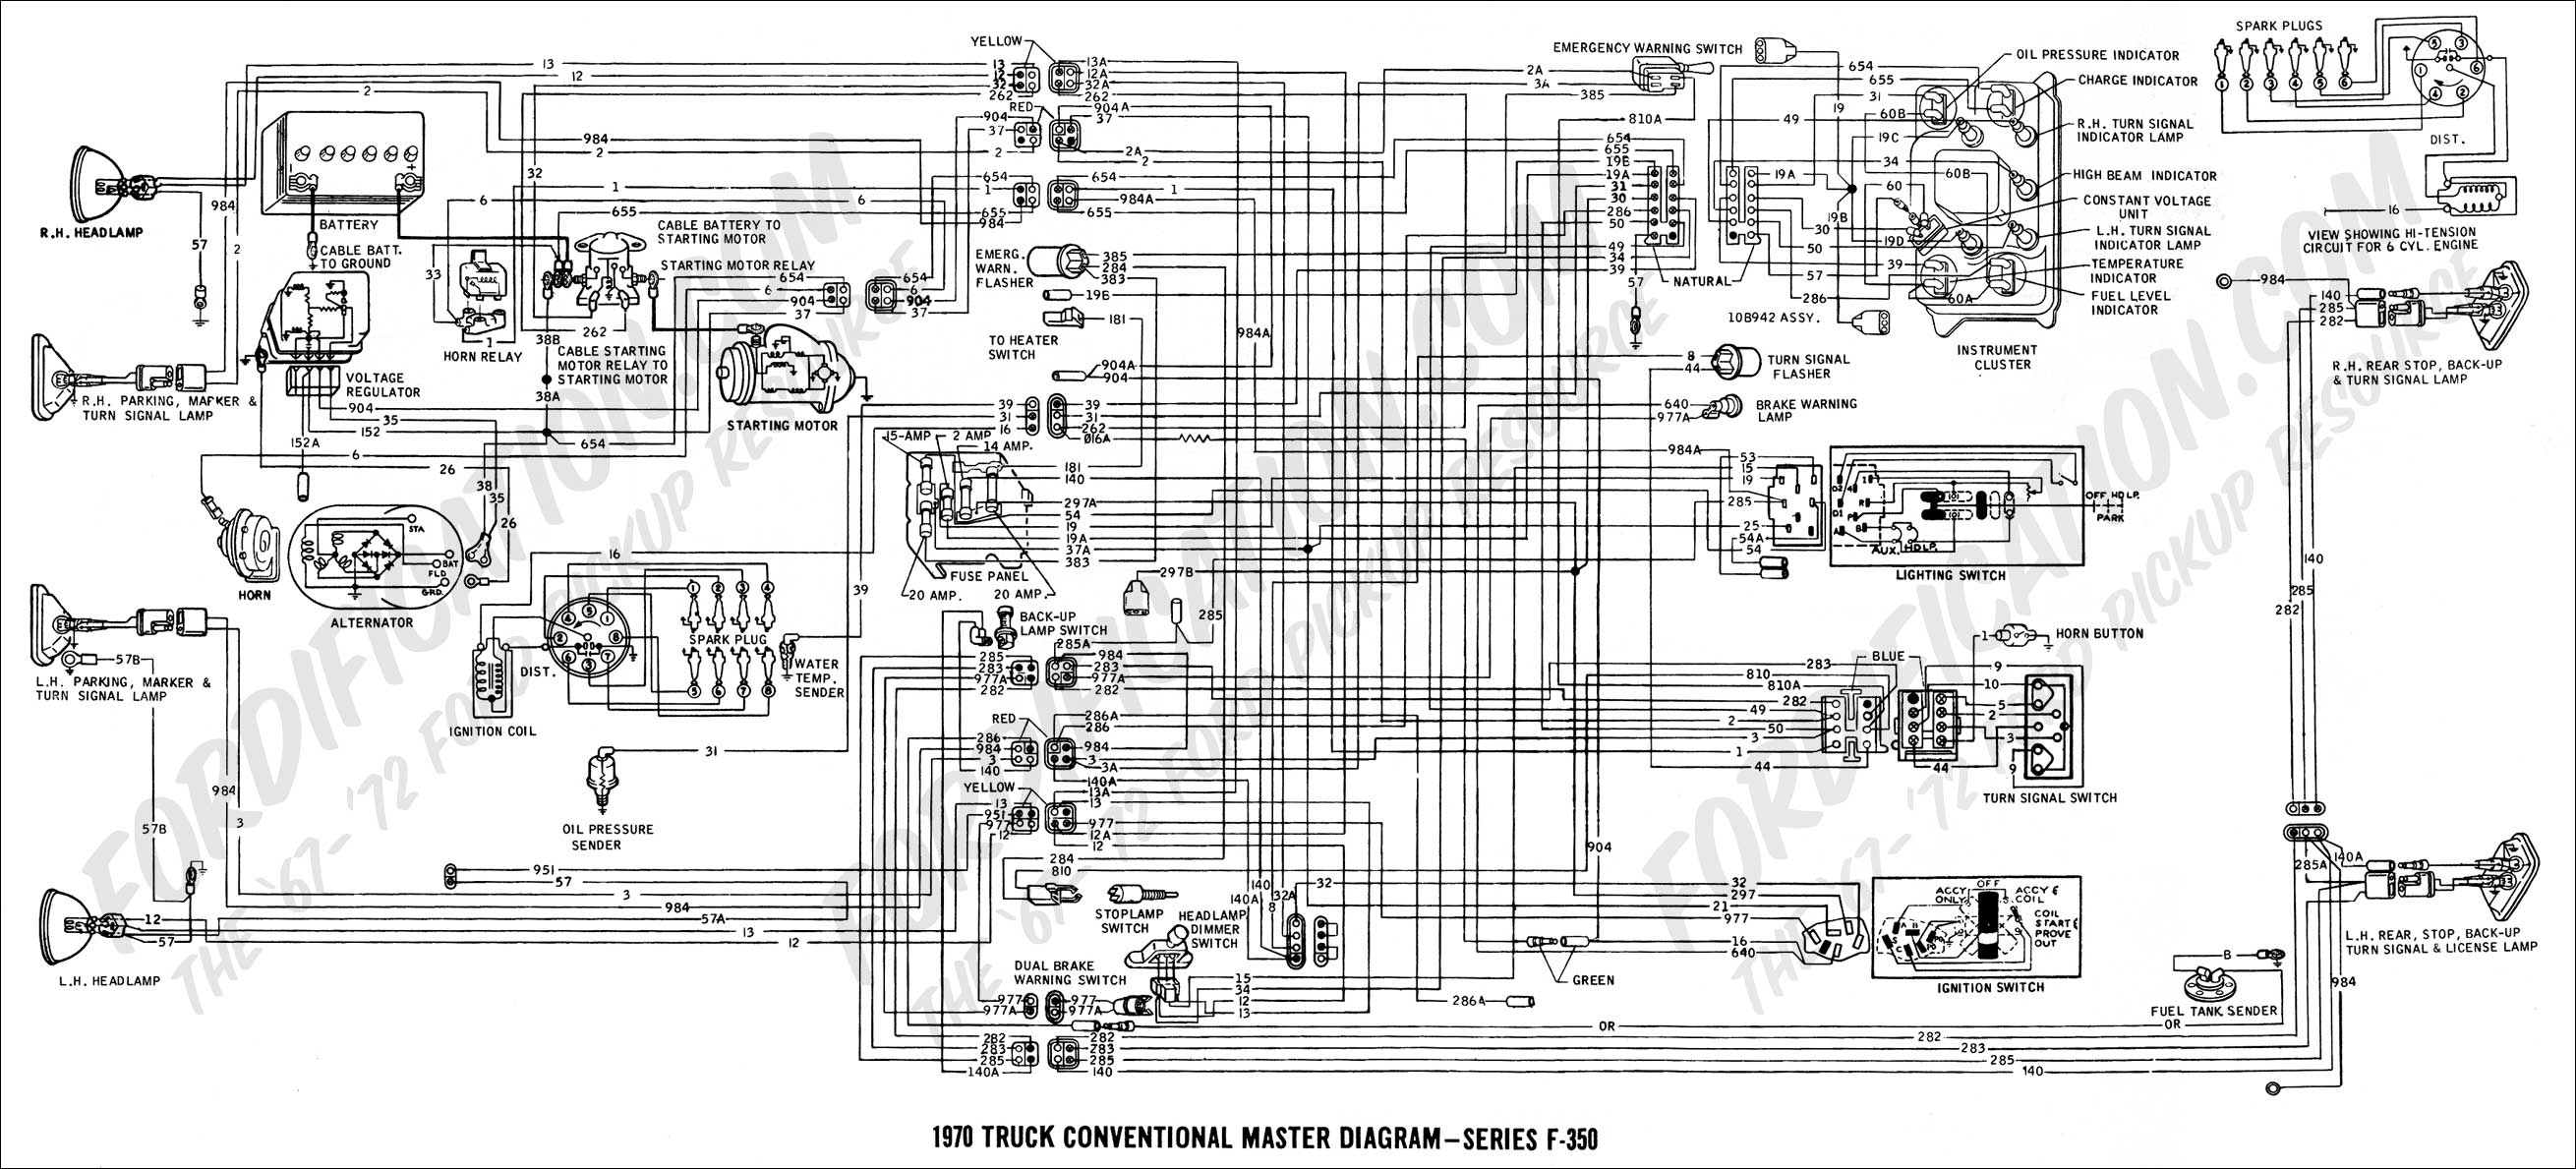 1989 f350 wiring diagram 1989 wiring diagrams online 1989 ford f250 tail light wiring diagram